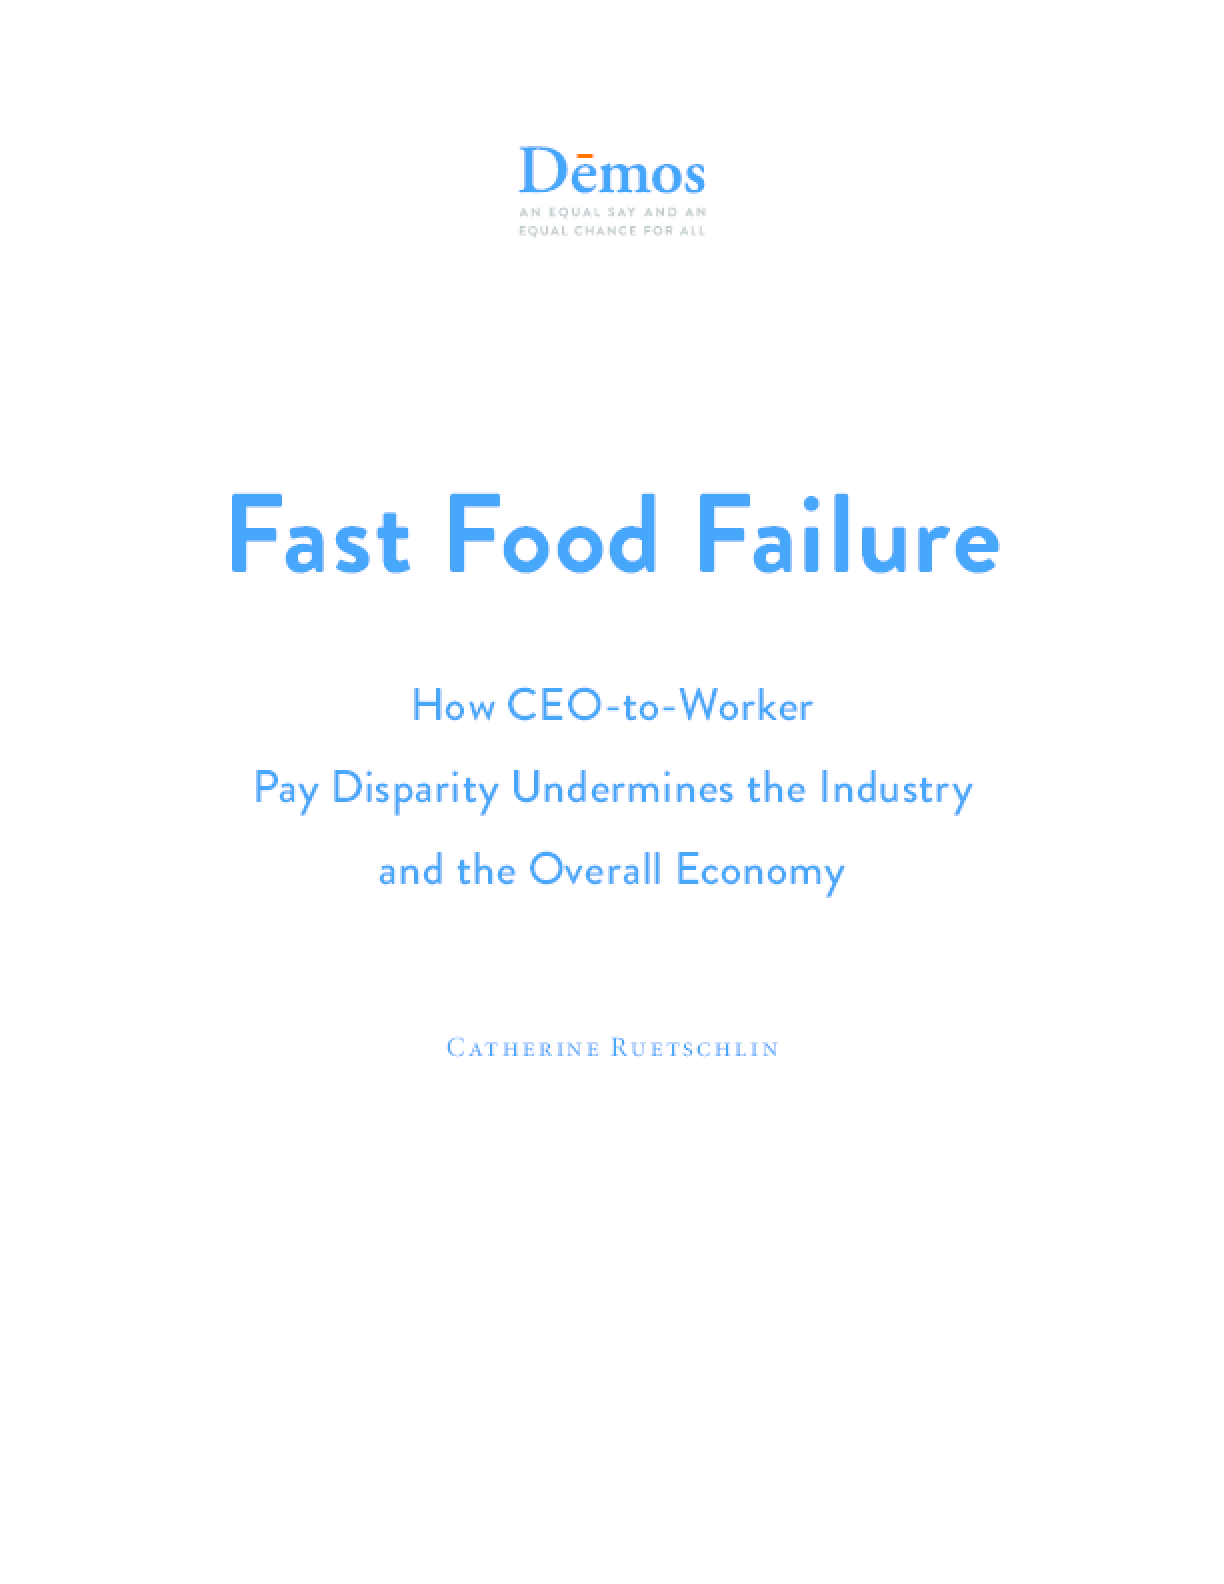 Fast Food Failure: How CEO-to-Worker Pay Disparity Undermines the Industry and the Overall Economy